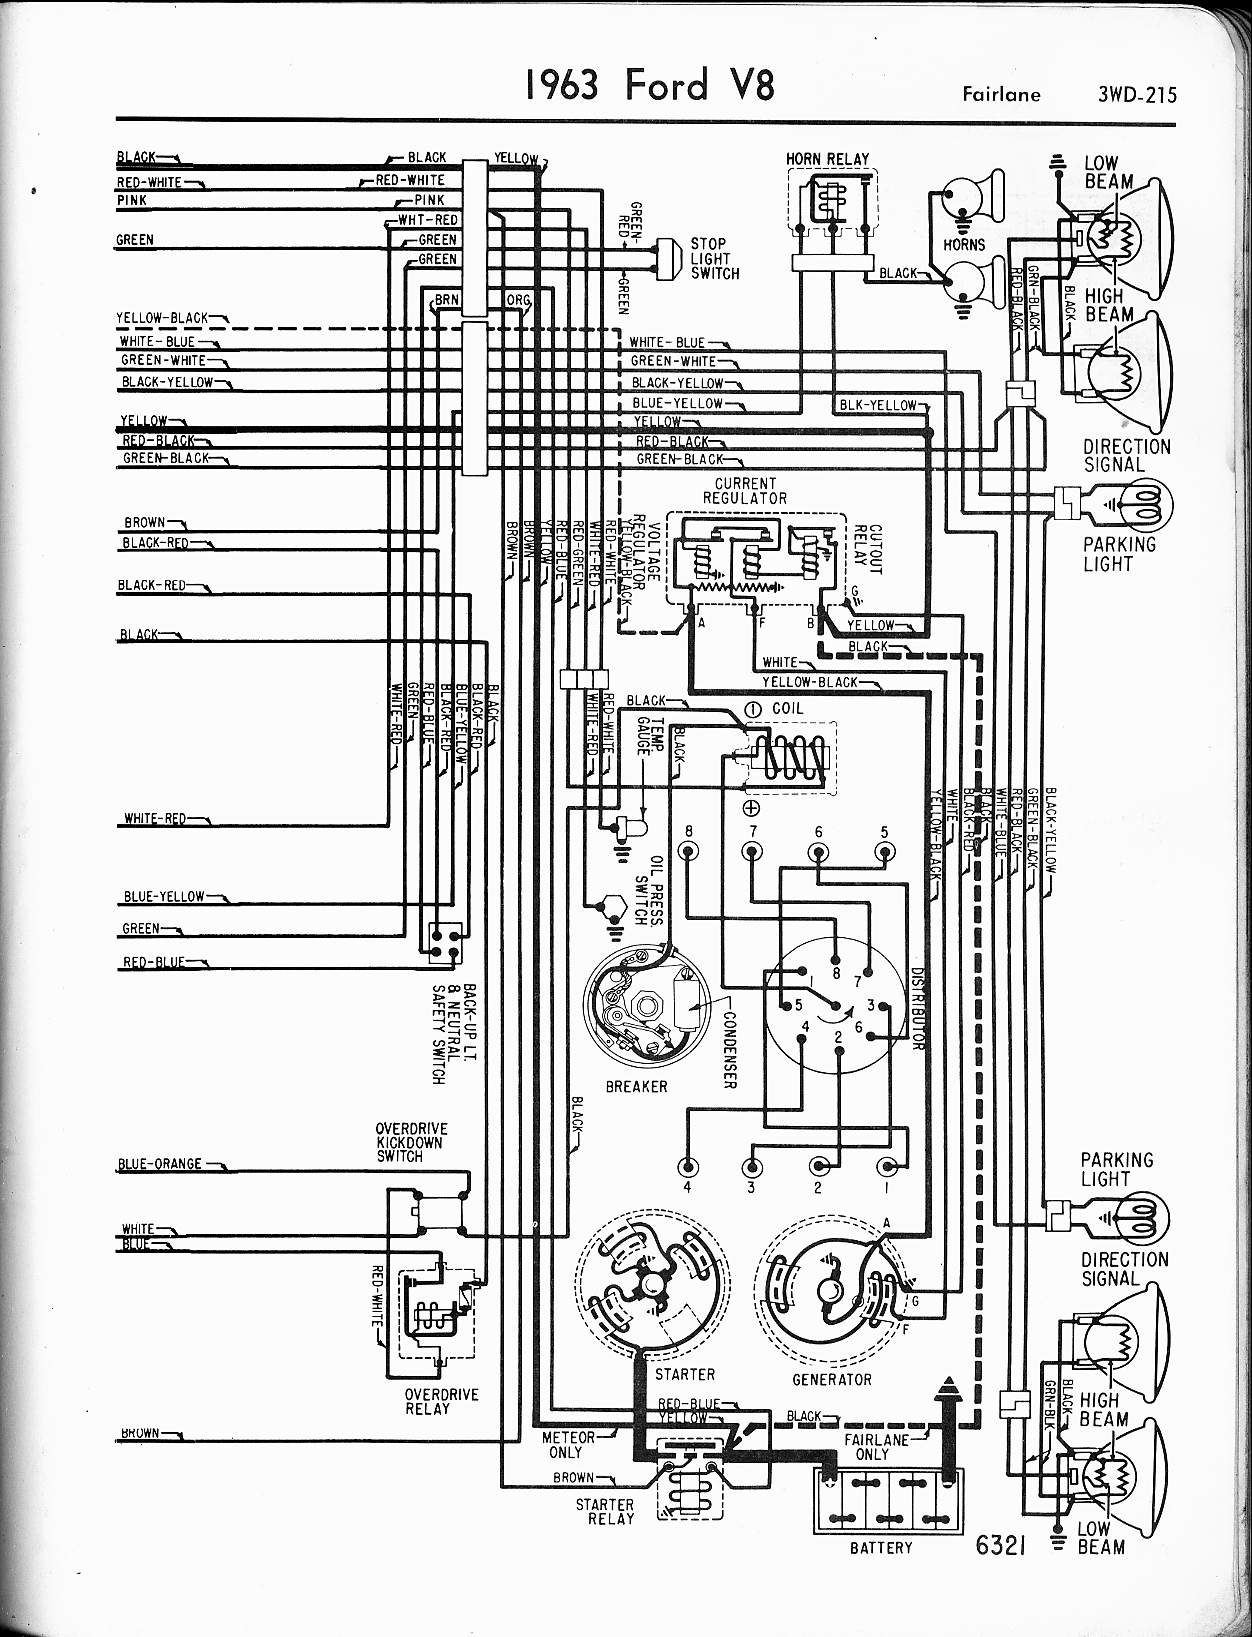 MWire5765 215 57 65 ford wiring diagrams au falcon engine wiring diagram at bakdesigns.co